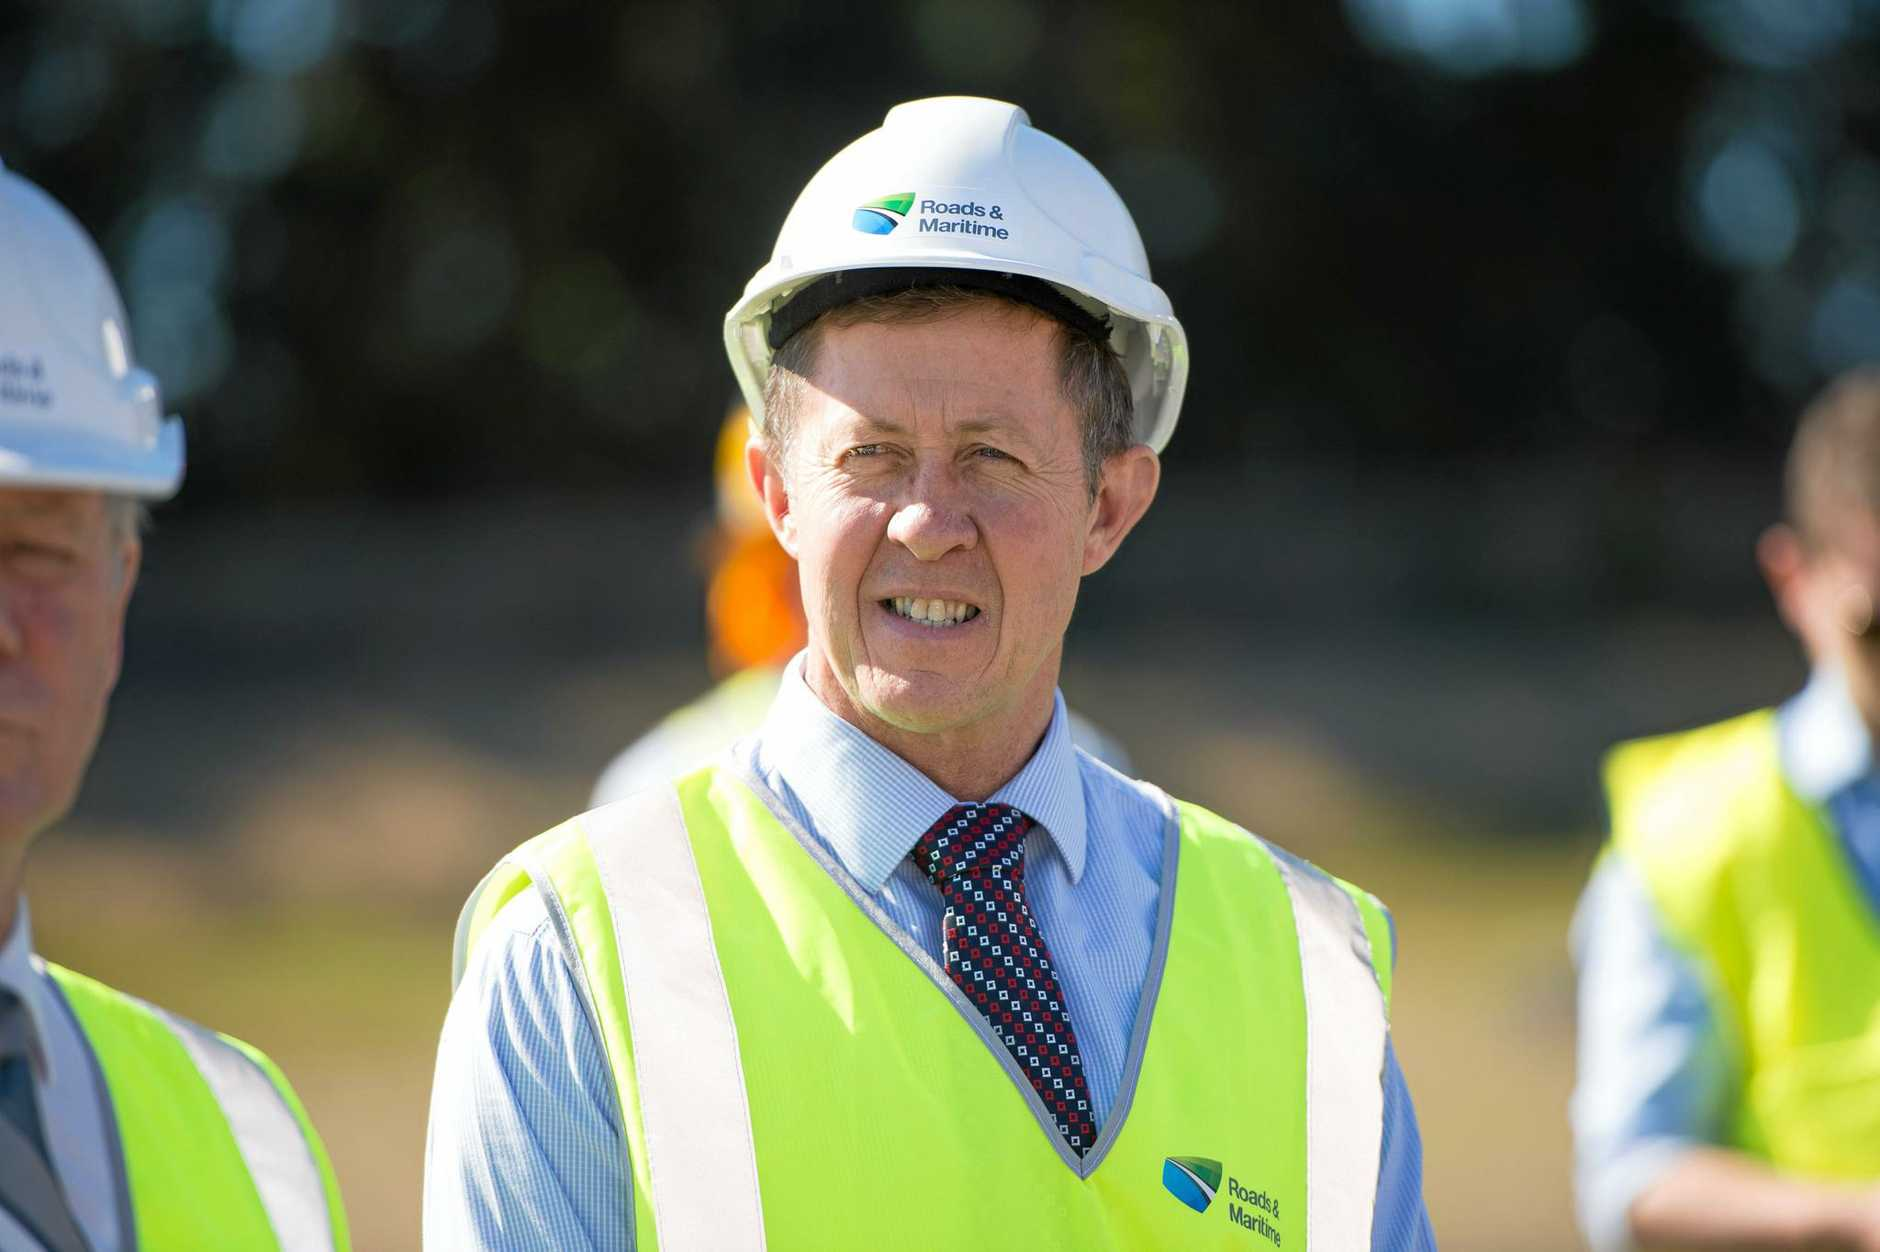 Cowper MP Luke Hartsuyker has strongly defended the Coalition's commitment to the Pacific Hwy upgrade after adverse comments were made by Opposition heavyweight Anthony Albanese yesterday.